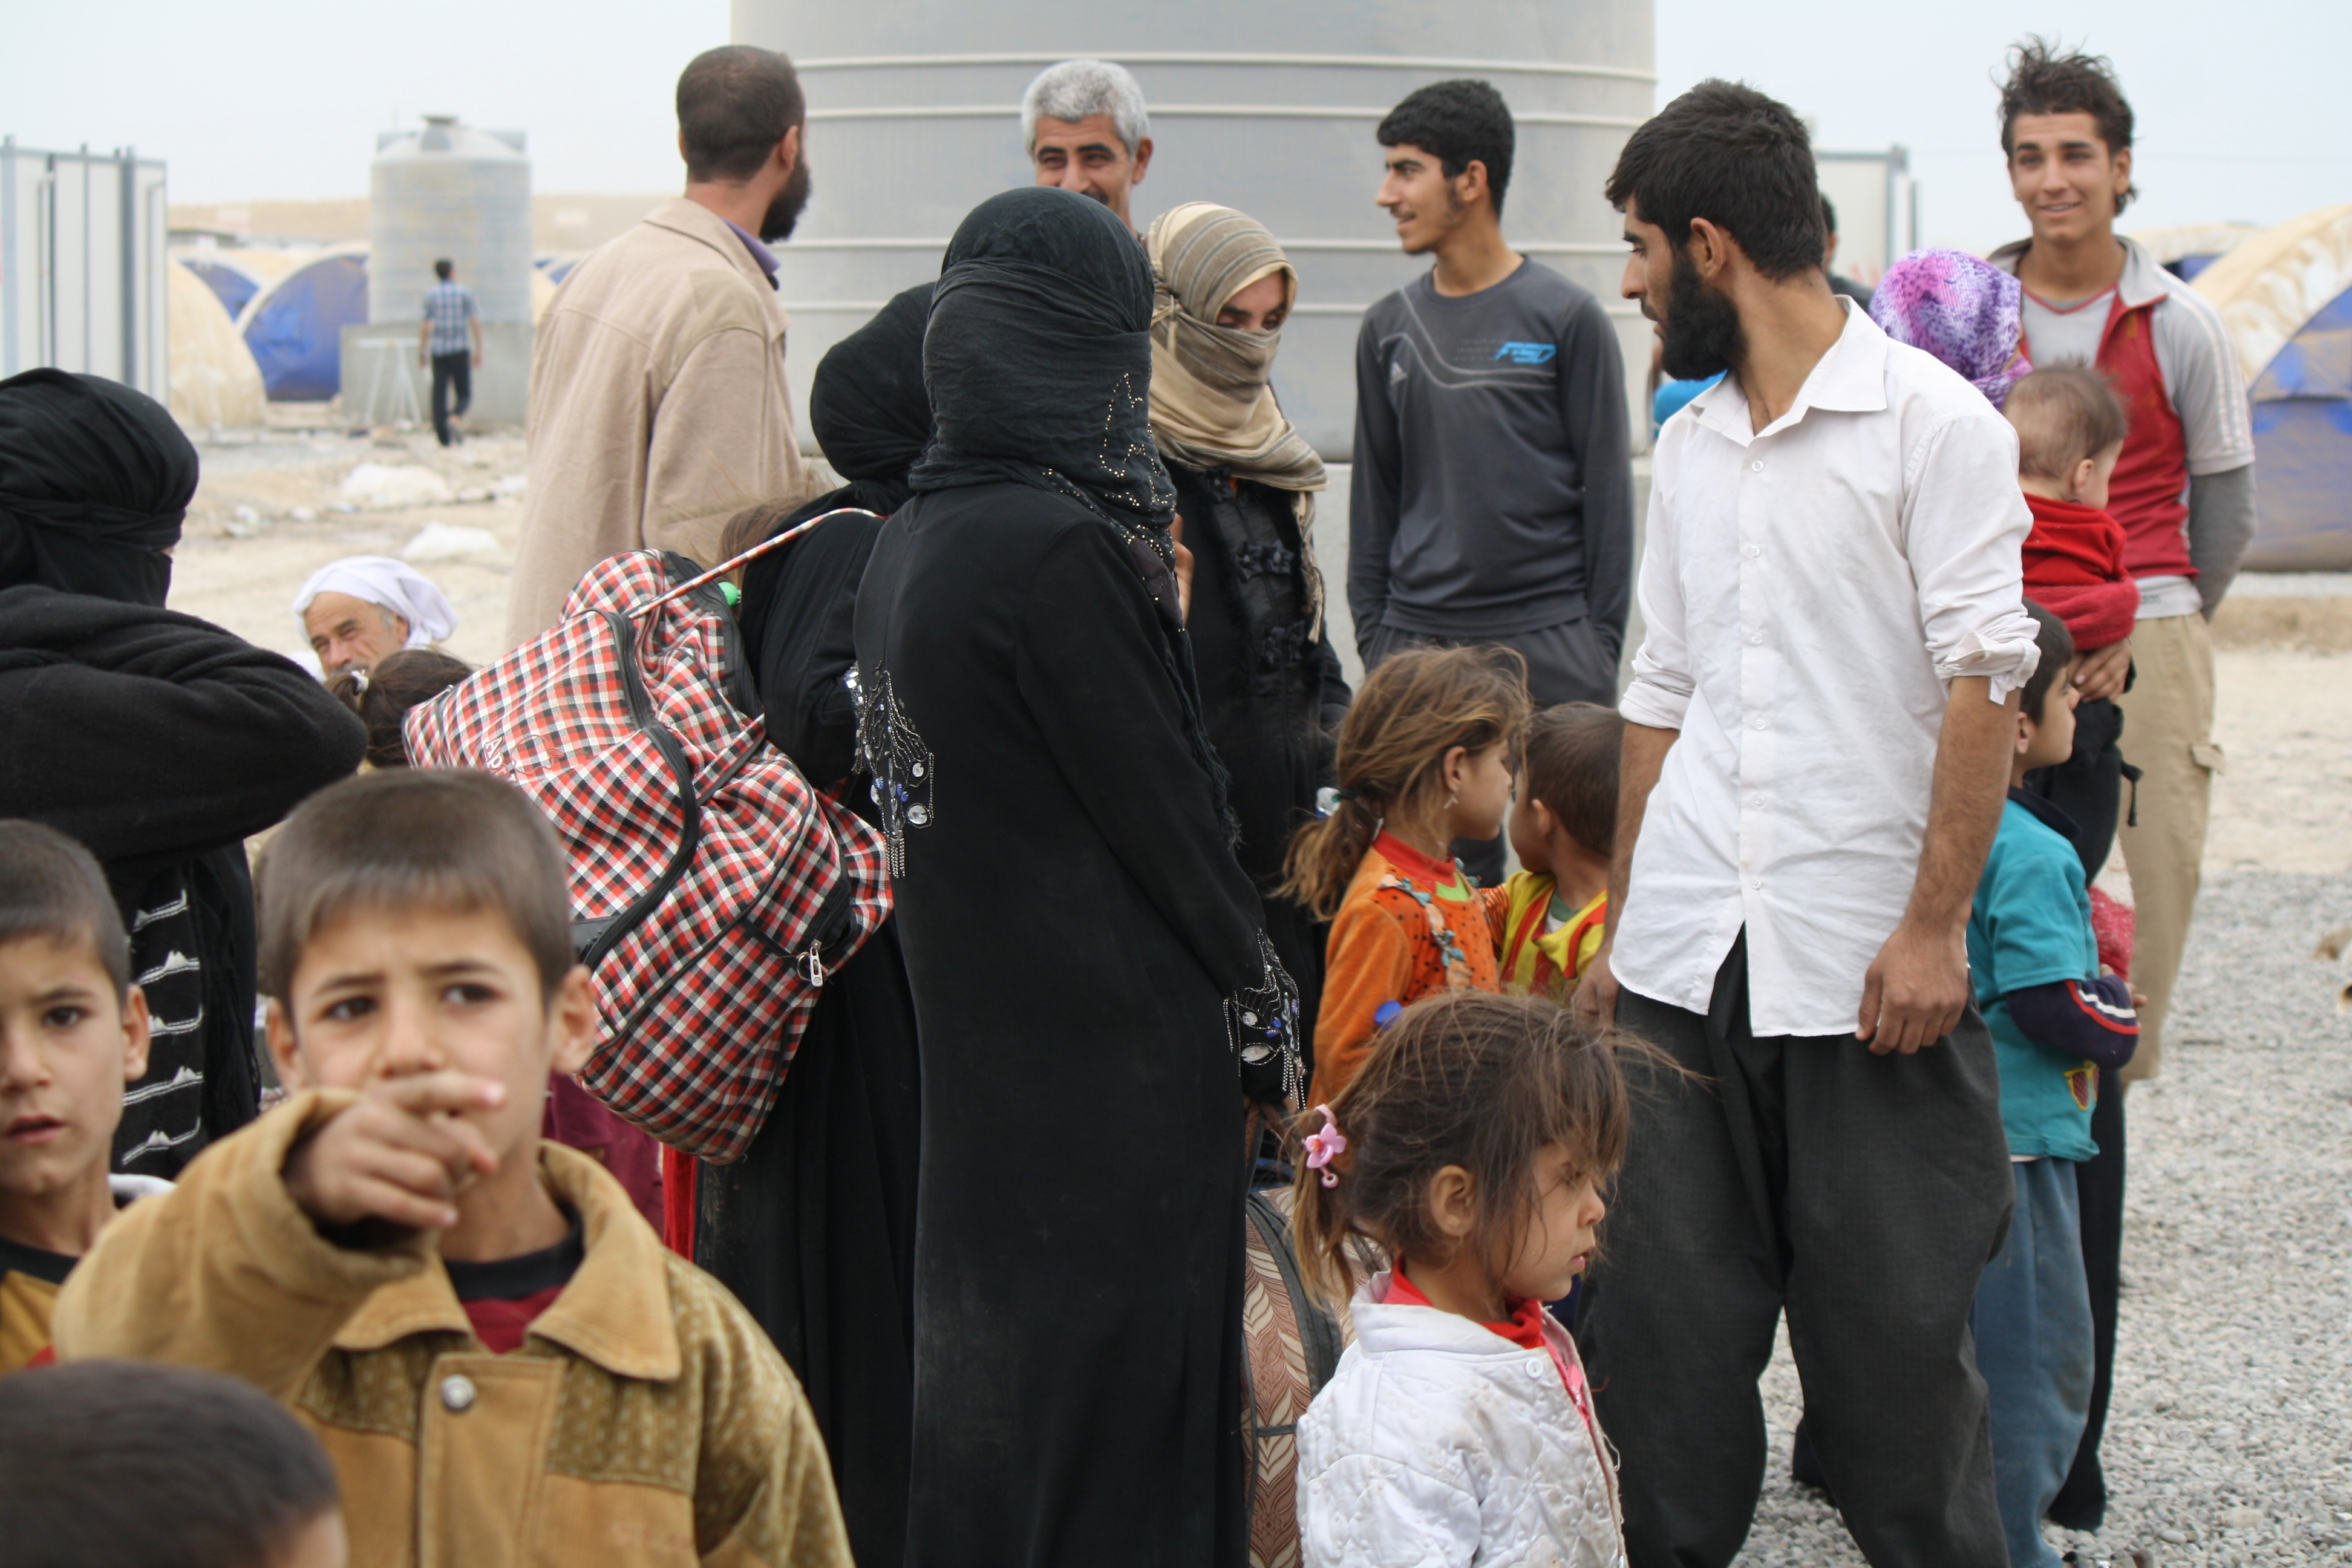 Groups of 20 to 40 people are arriving a few times a day or night, according to Peshmerga soldiers in the Khazir Camp in the Kurdish region of northern Iraq, Oct. 28, 2016.